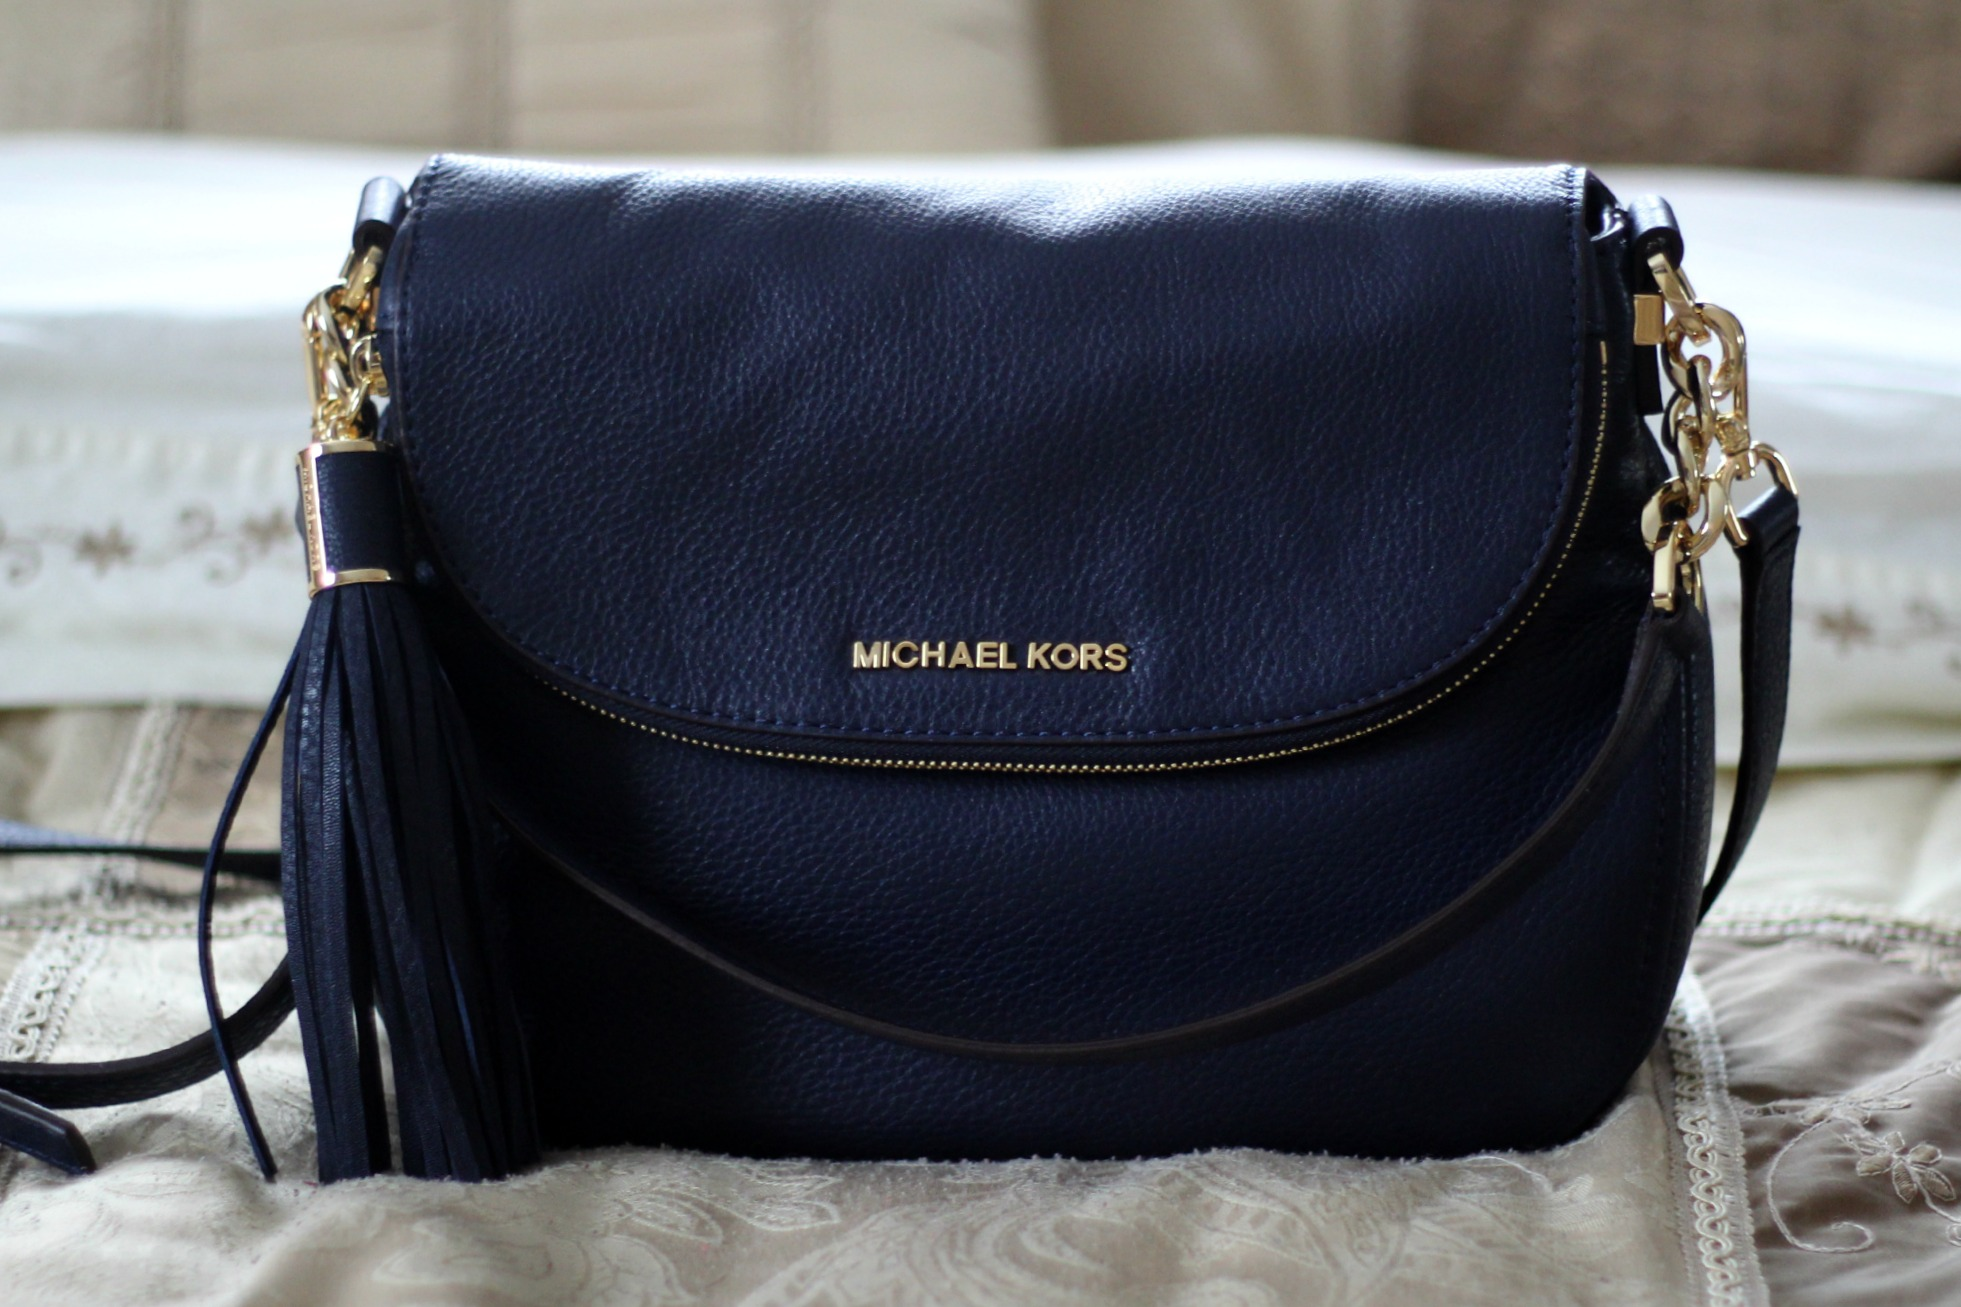 53b7abac2fd7 Buy cheap michael kors bedford crossbody > OFF56% Discounted